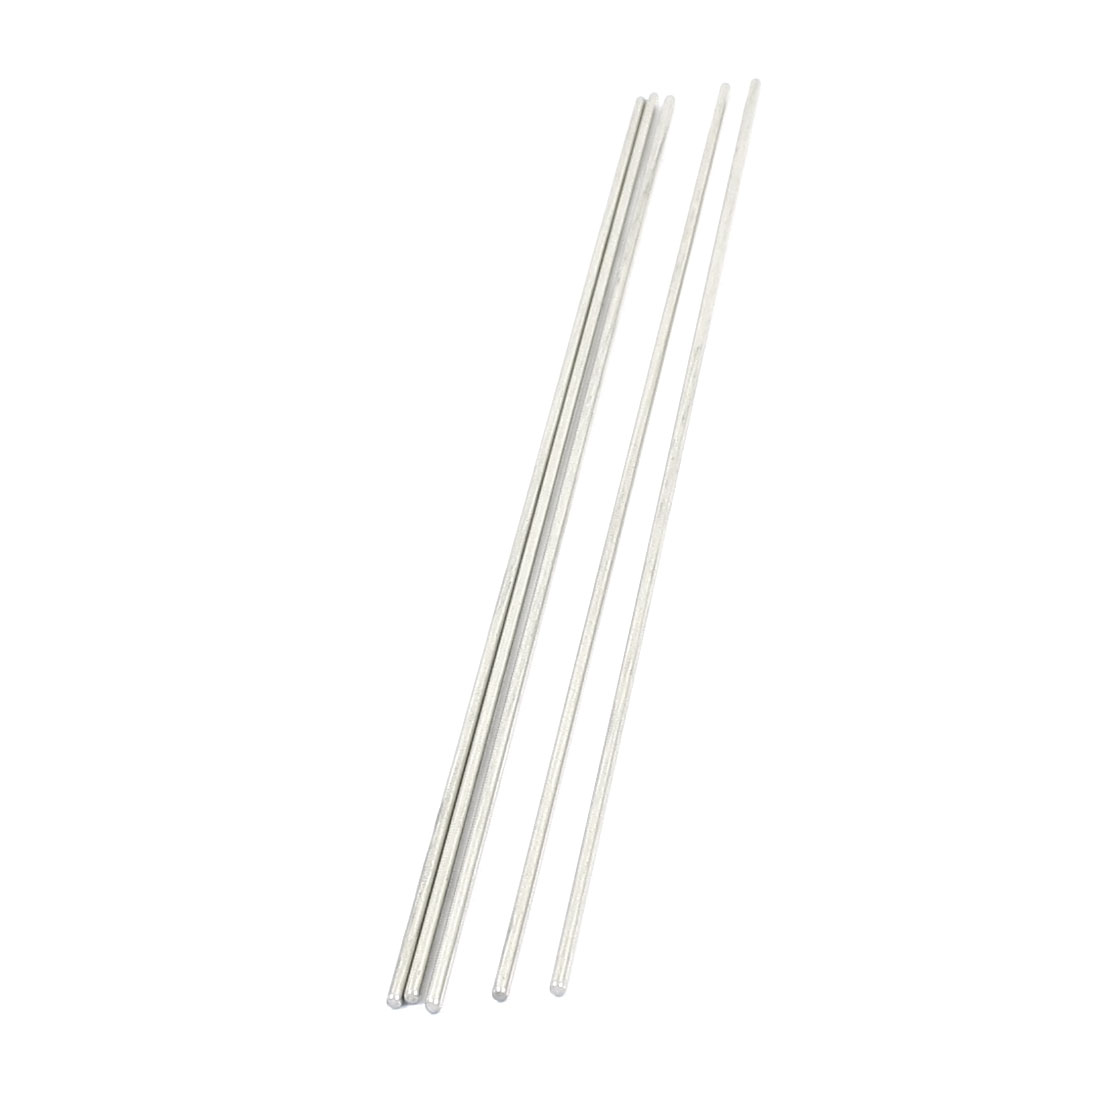 5Pcs Hardware Stainless Steel 200x2mm Transmission Round Rods